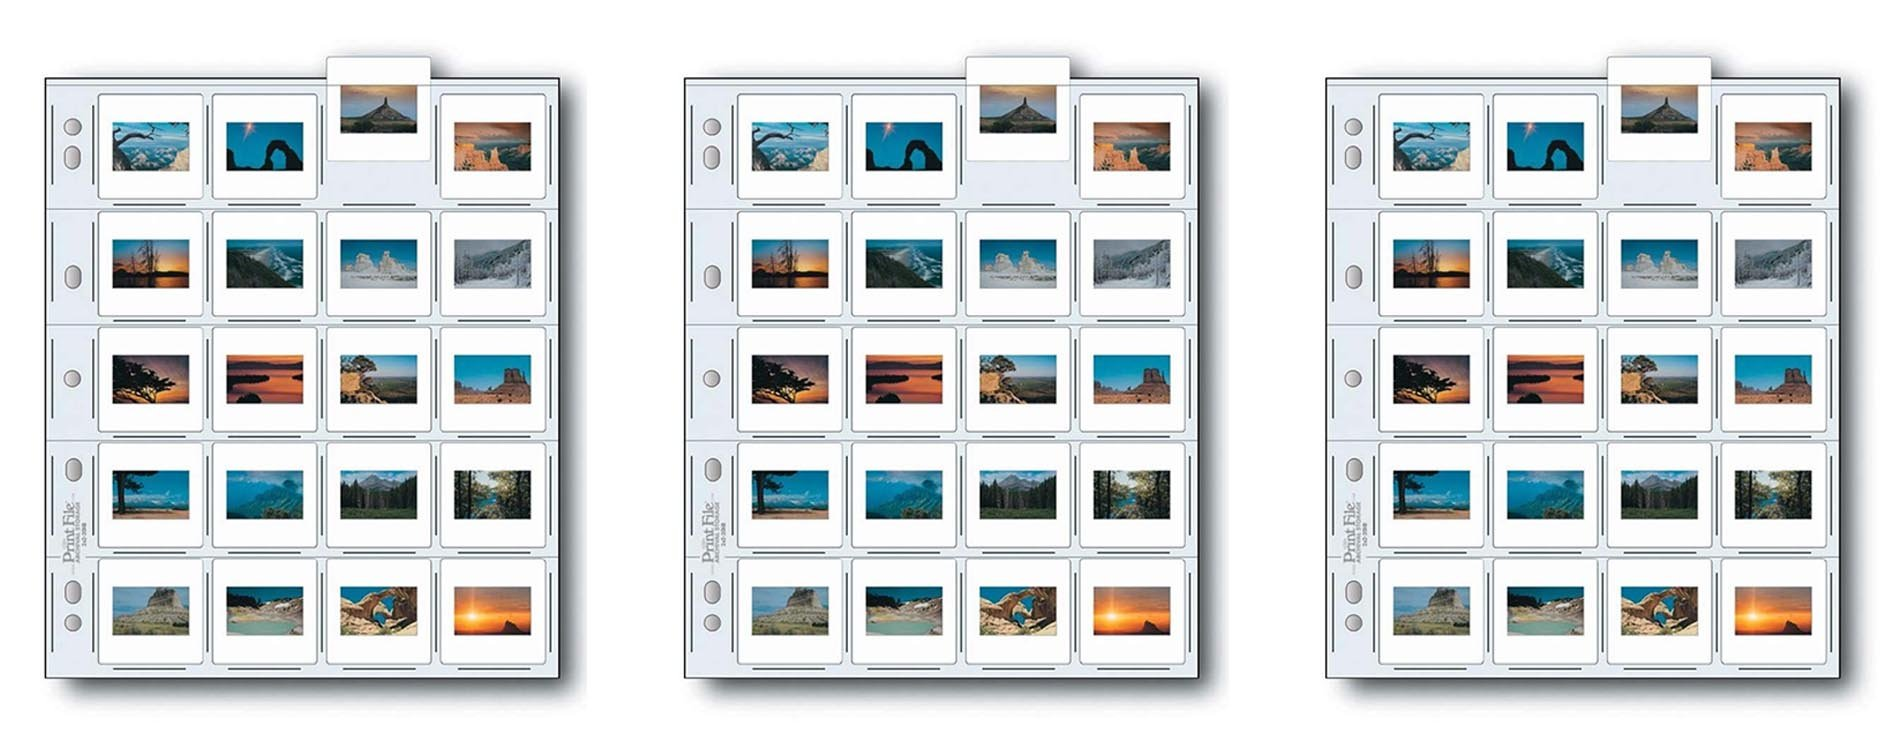 Print File 2x2-20B Archival Storage Page for 20 Slides - 25PC - 050-0270 3pack